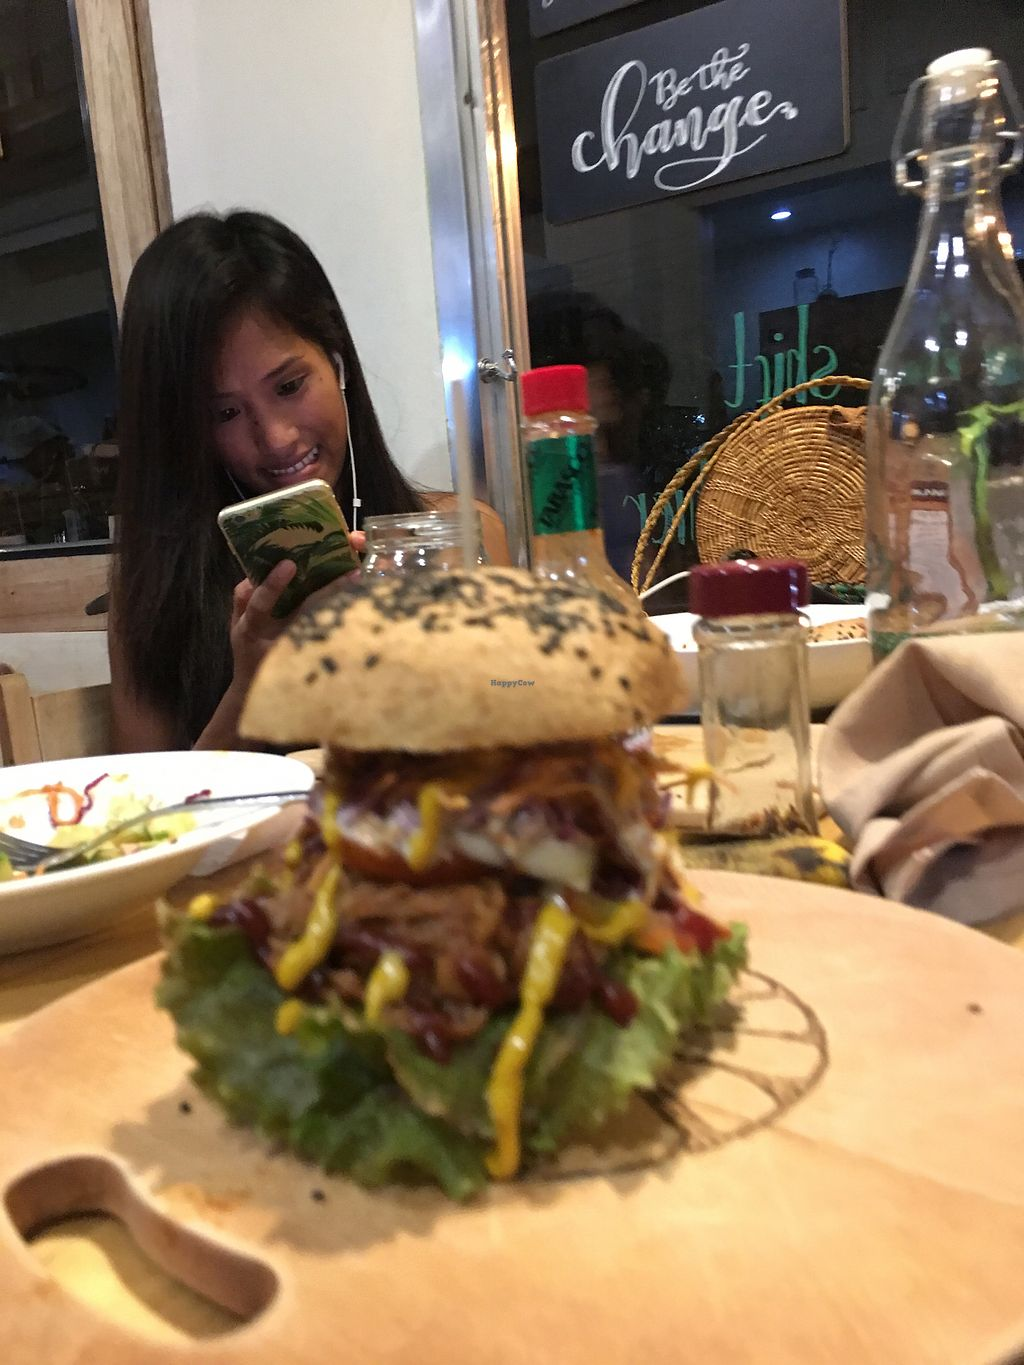 """Photo of The Vegan Dinosaur  by <a href=""""/members/profile/Durianrider"""">Durianrider</a> <br/>Burgers  <br/> October 11, 2017  - <a href='/contact/abuse/image/59921/314192'>Report</a>"""